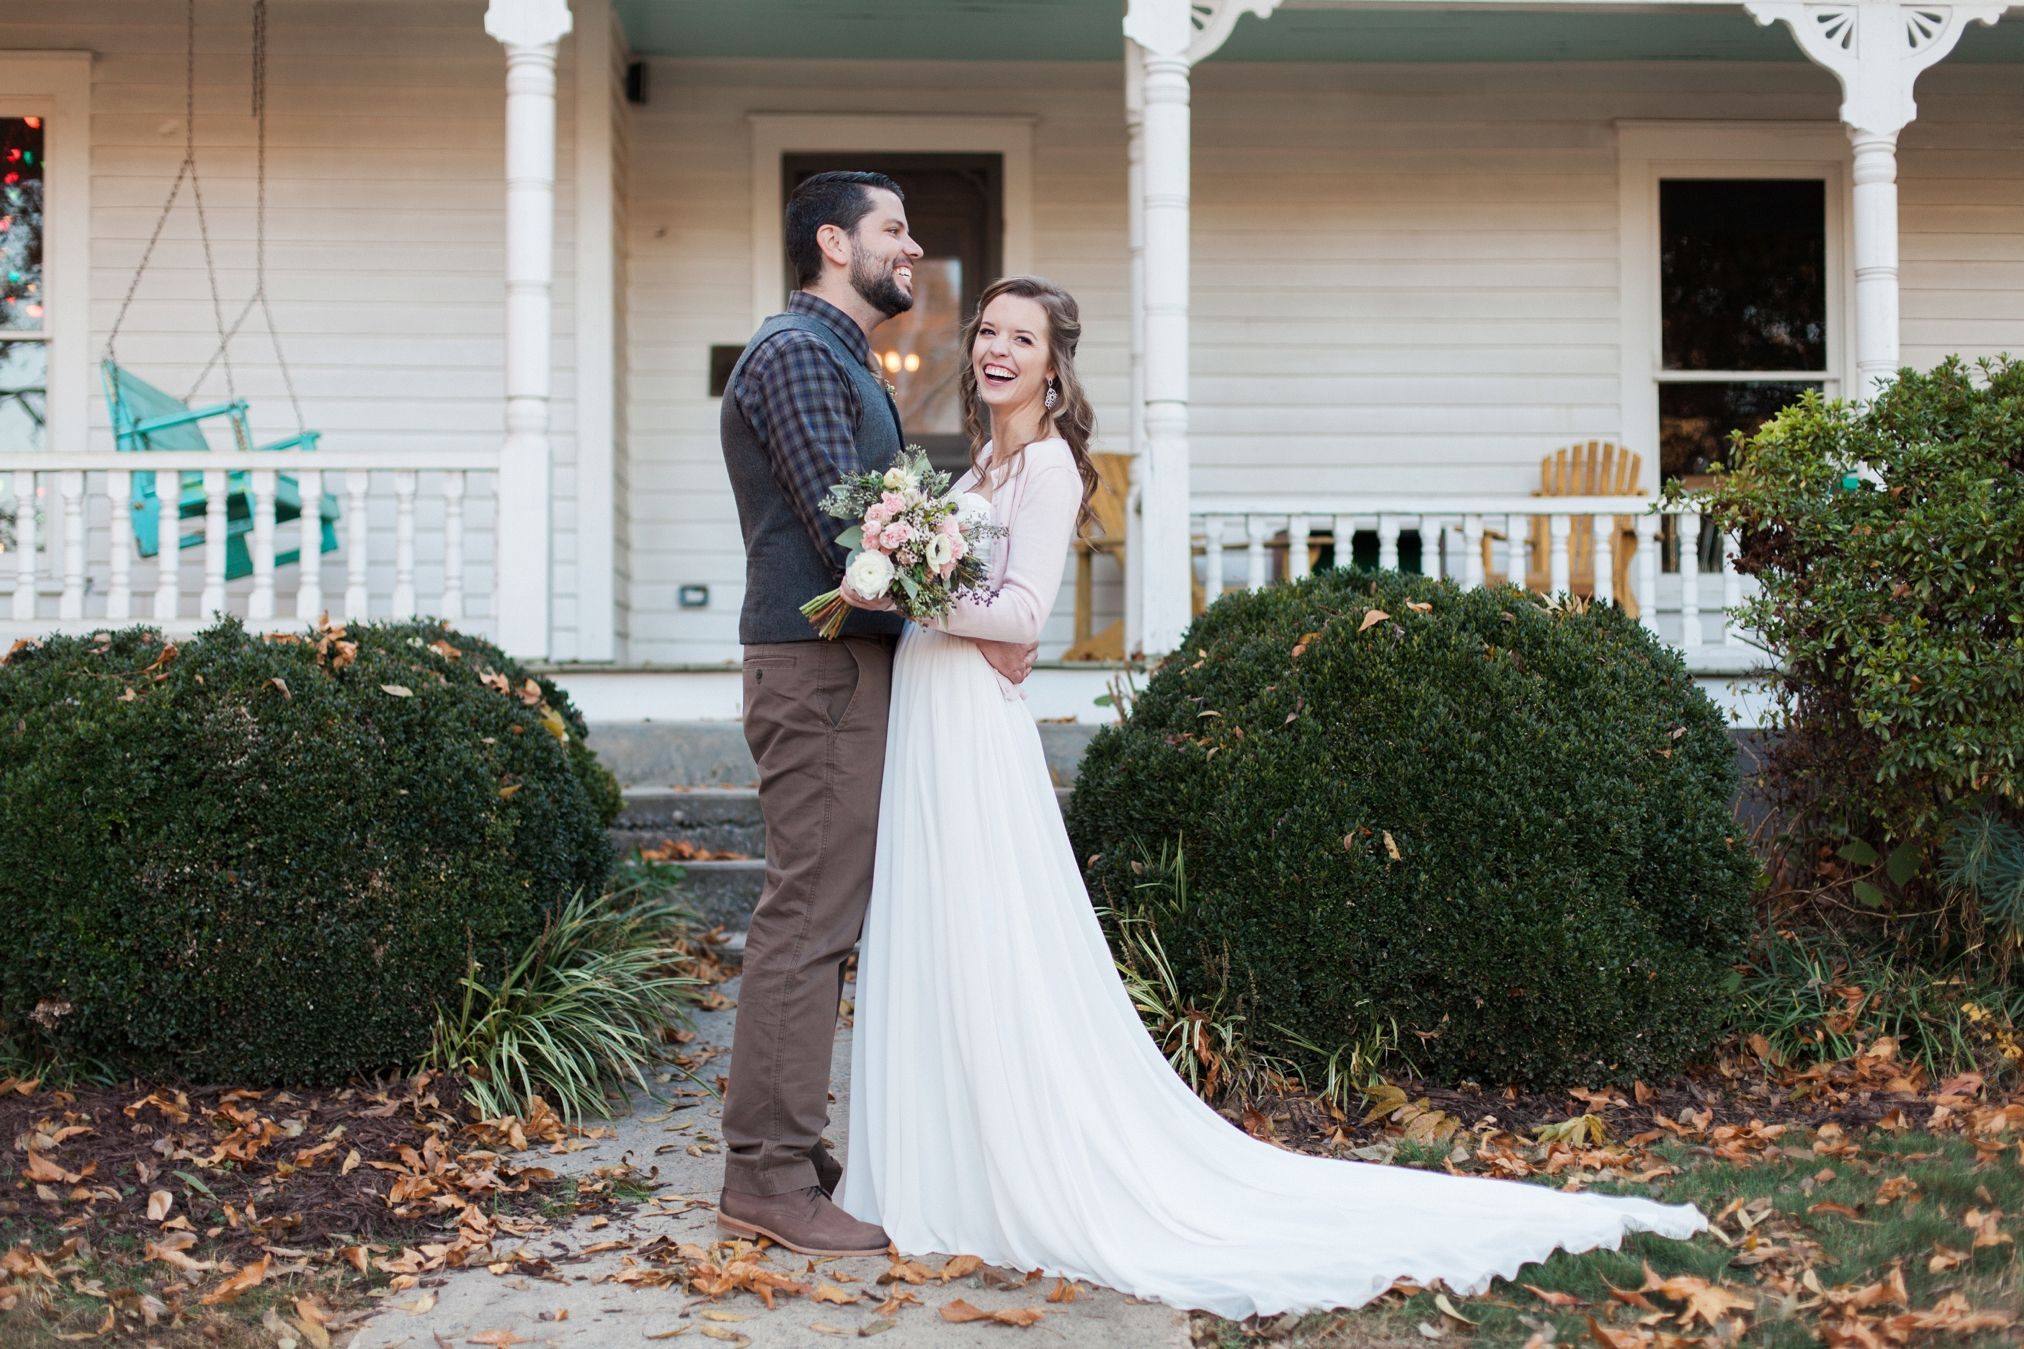 Southern style wedding dresses  west milford farm west milford farm wedding west milford farm